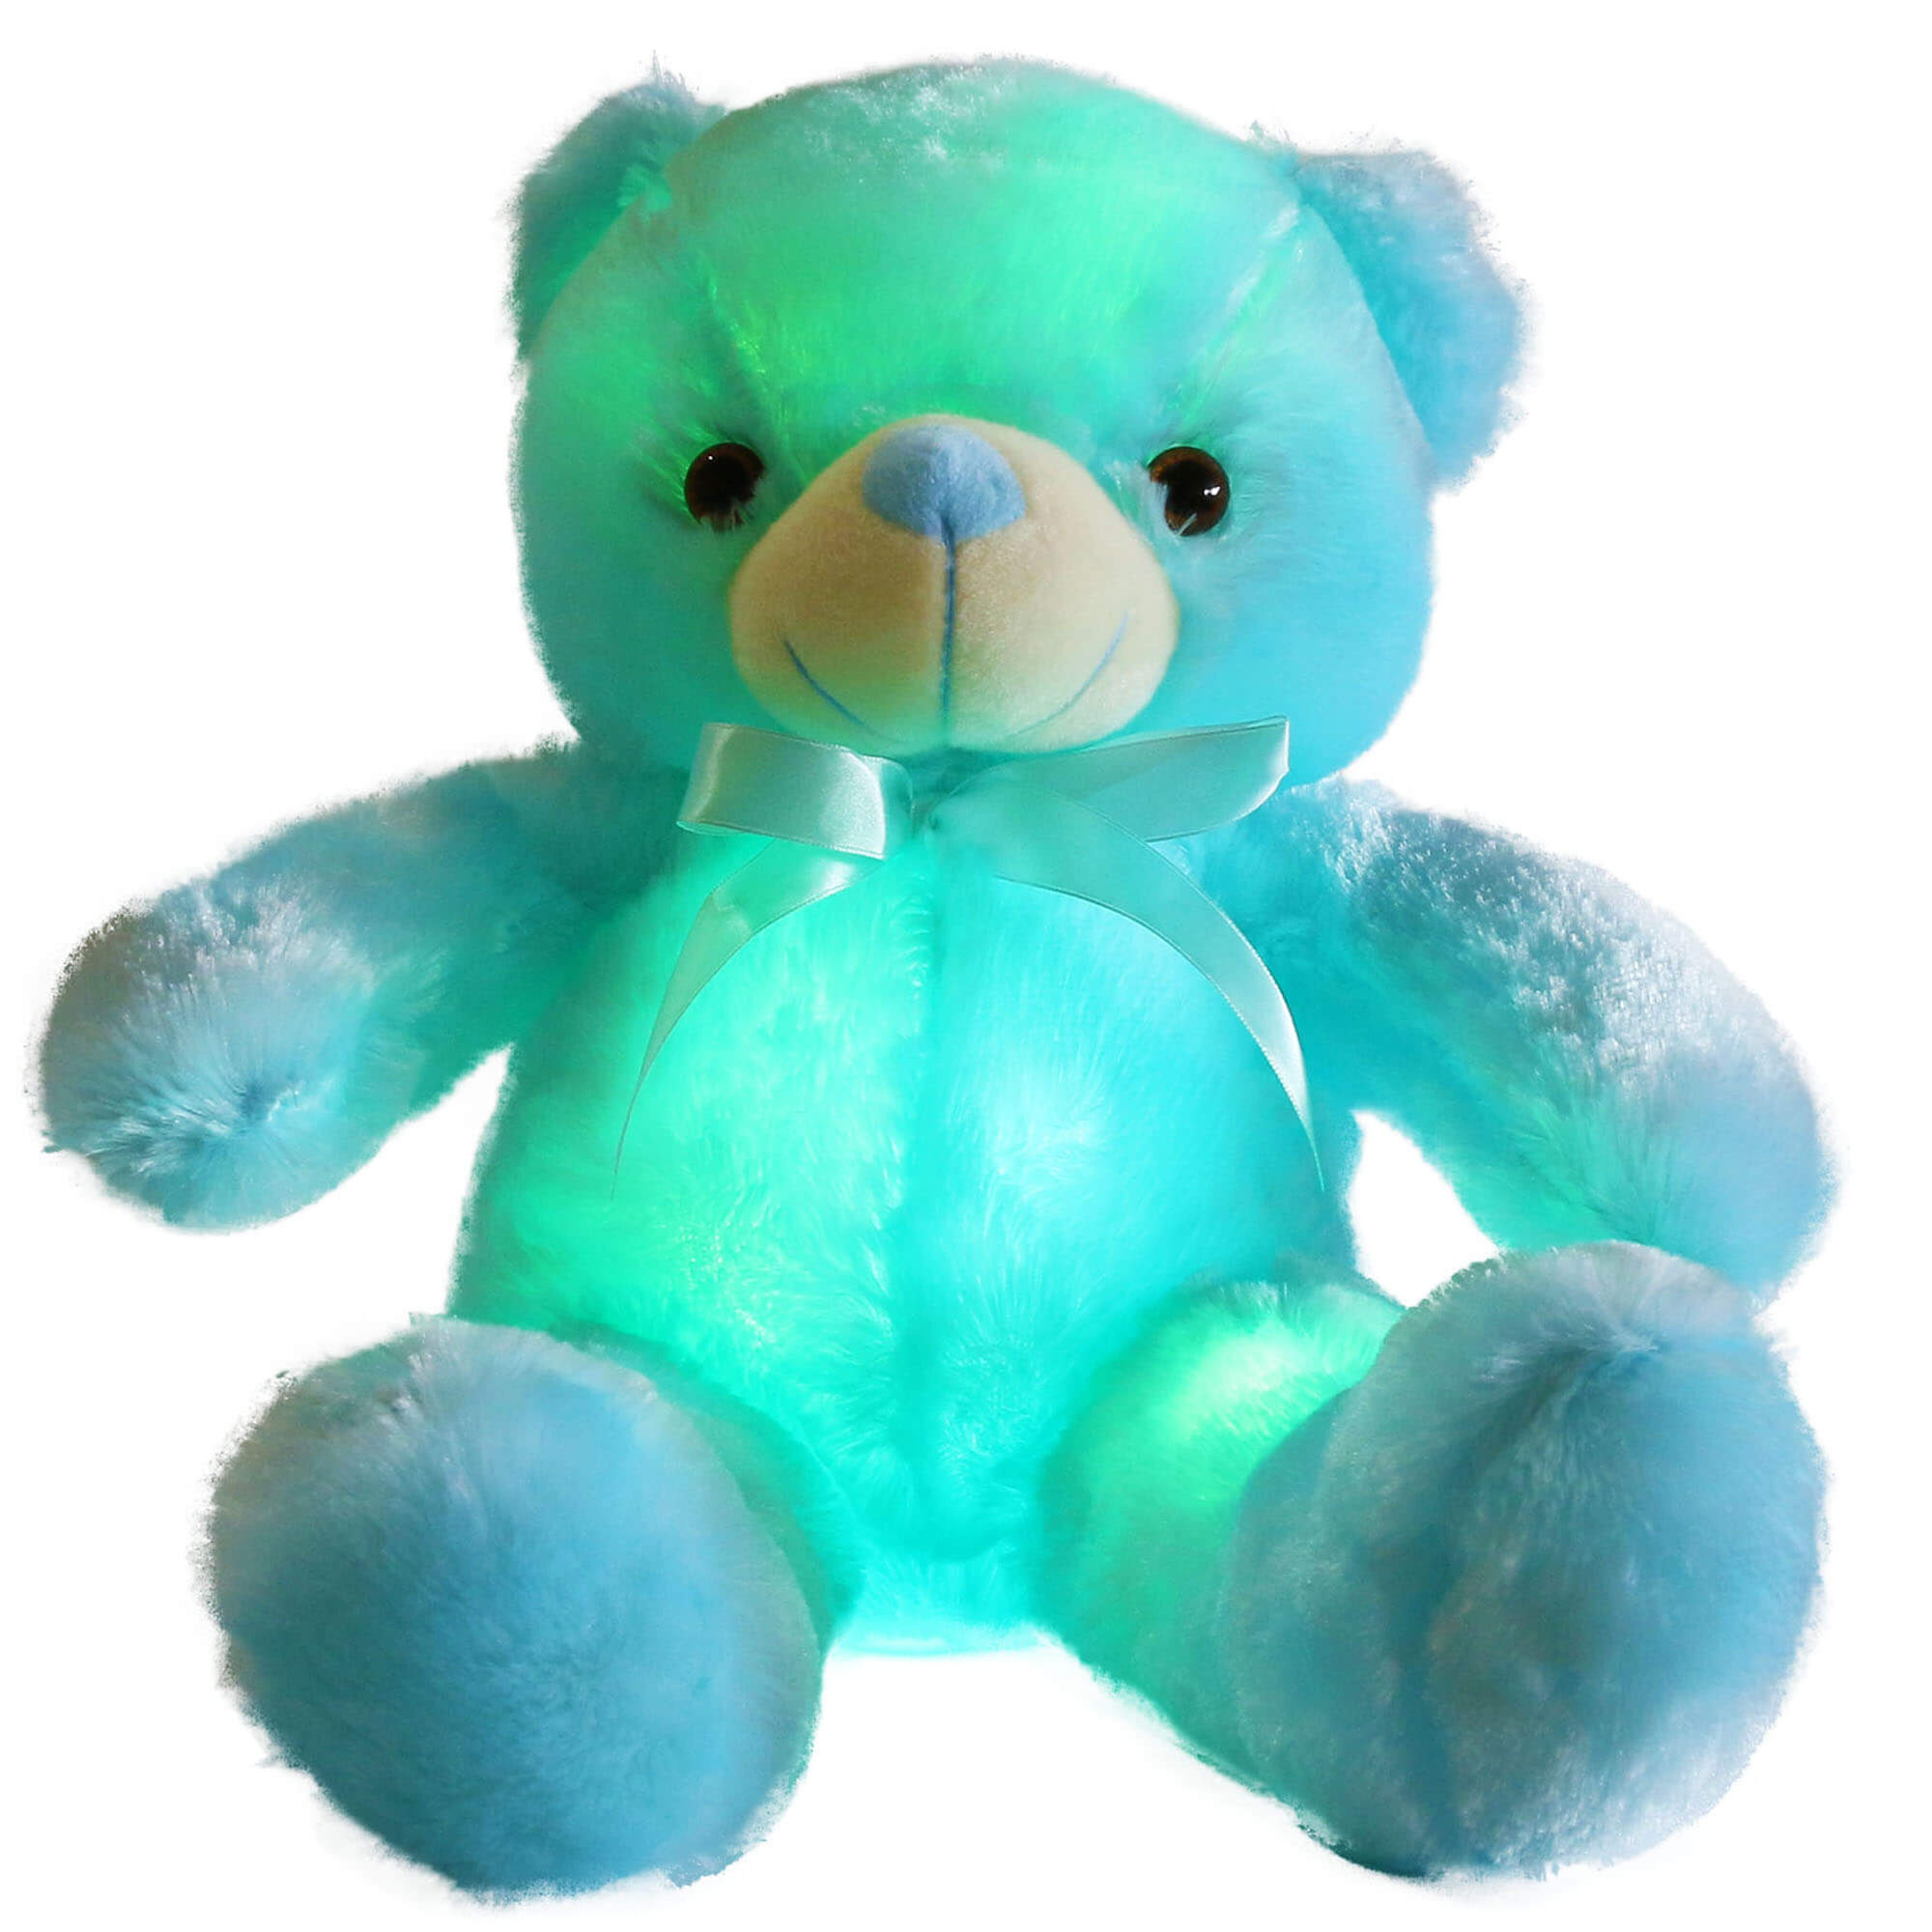 light up teddy bear LED stuffed animals, 20-Inch | Bstaofy - Glow Guards